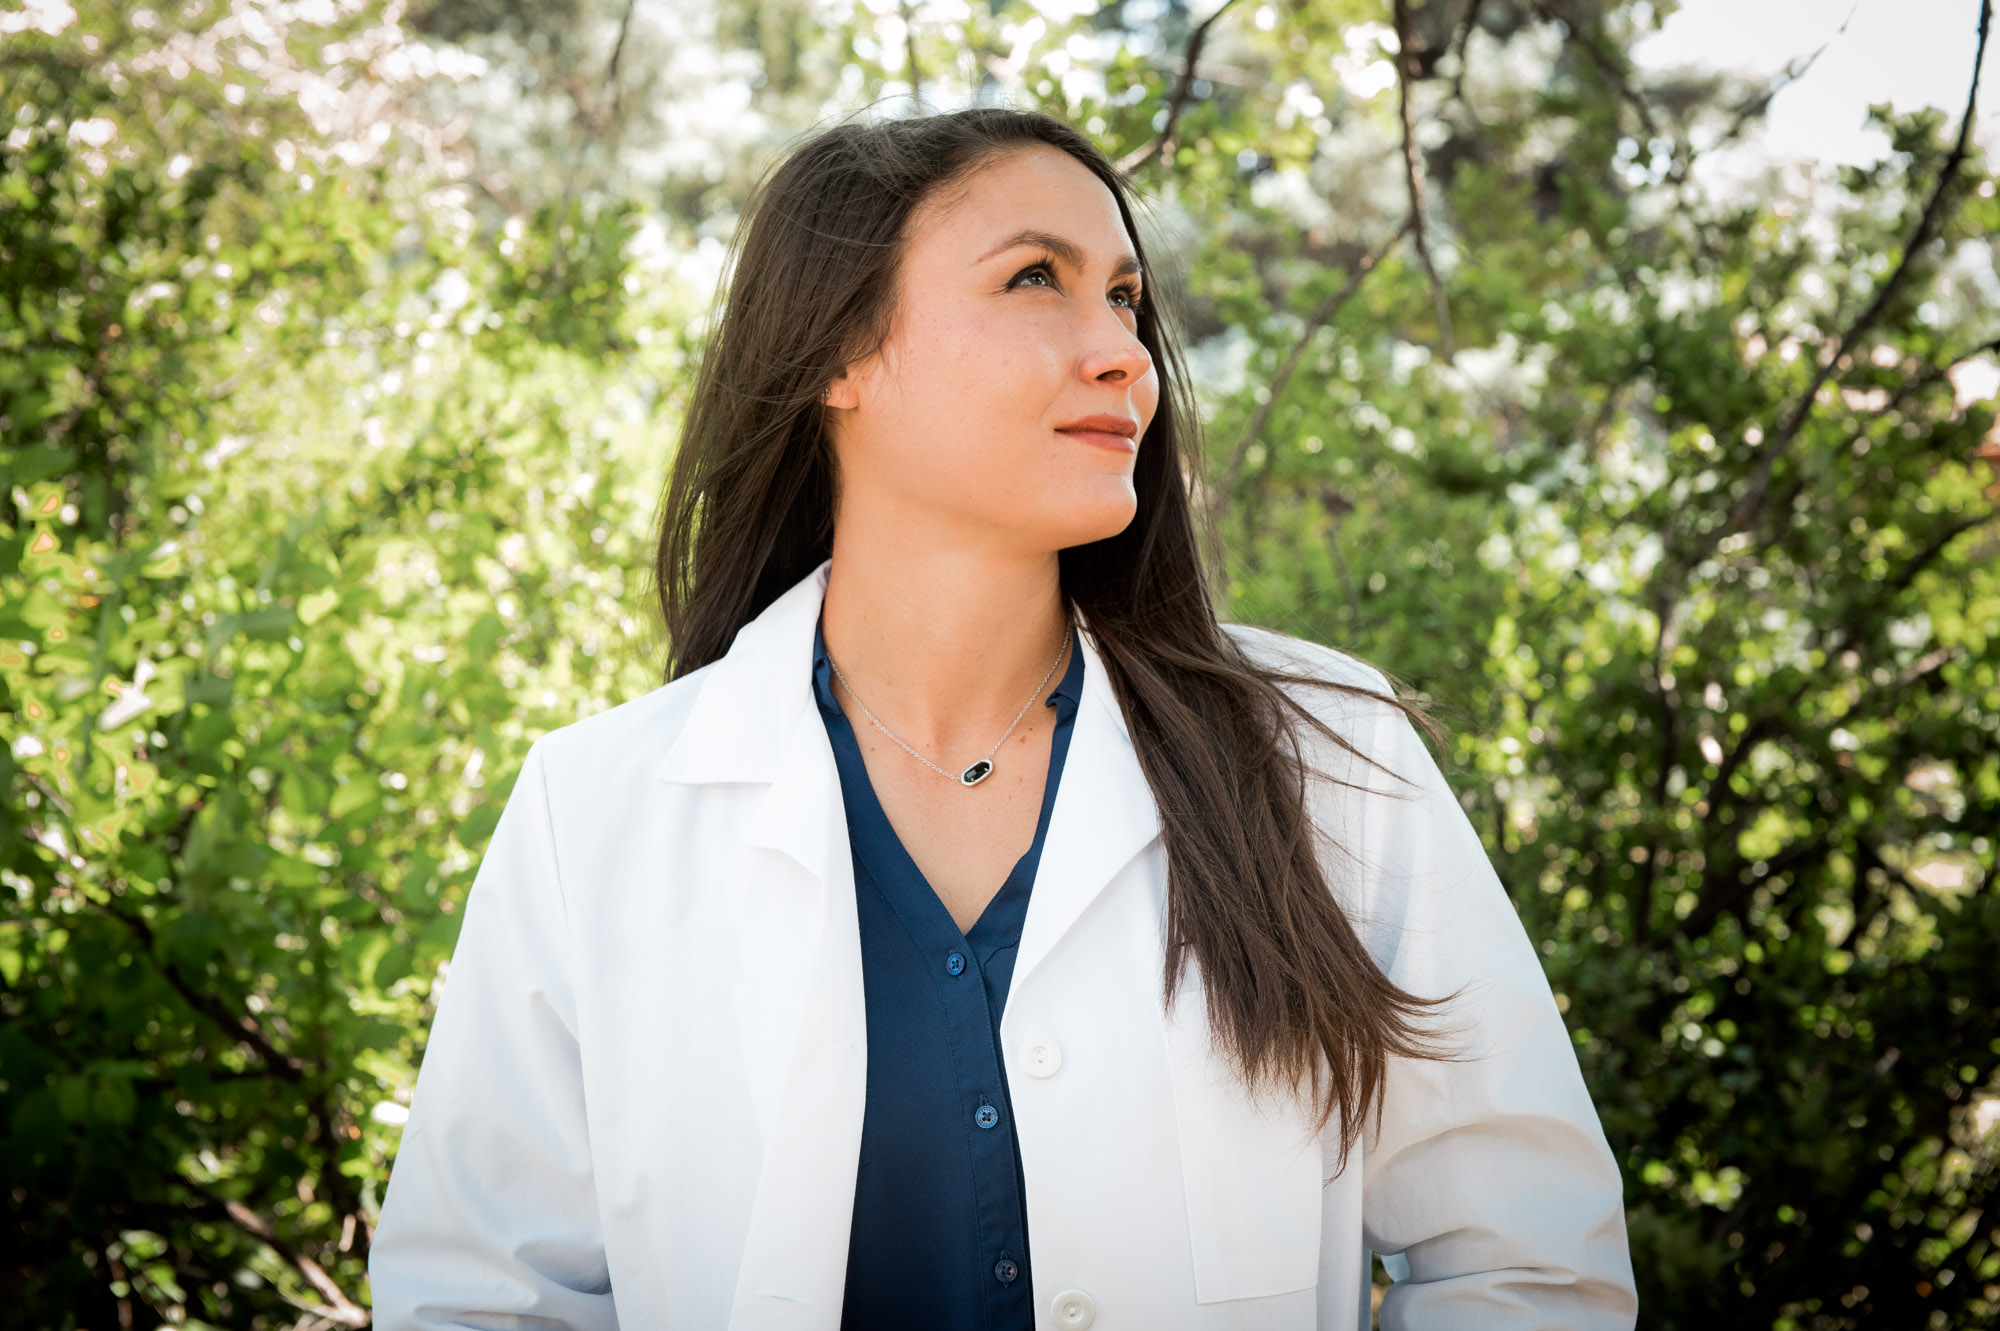 Lesha Estrada in her White coat